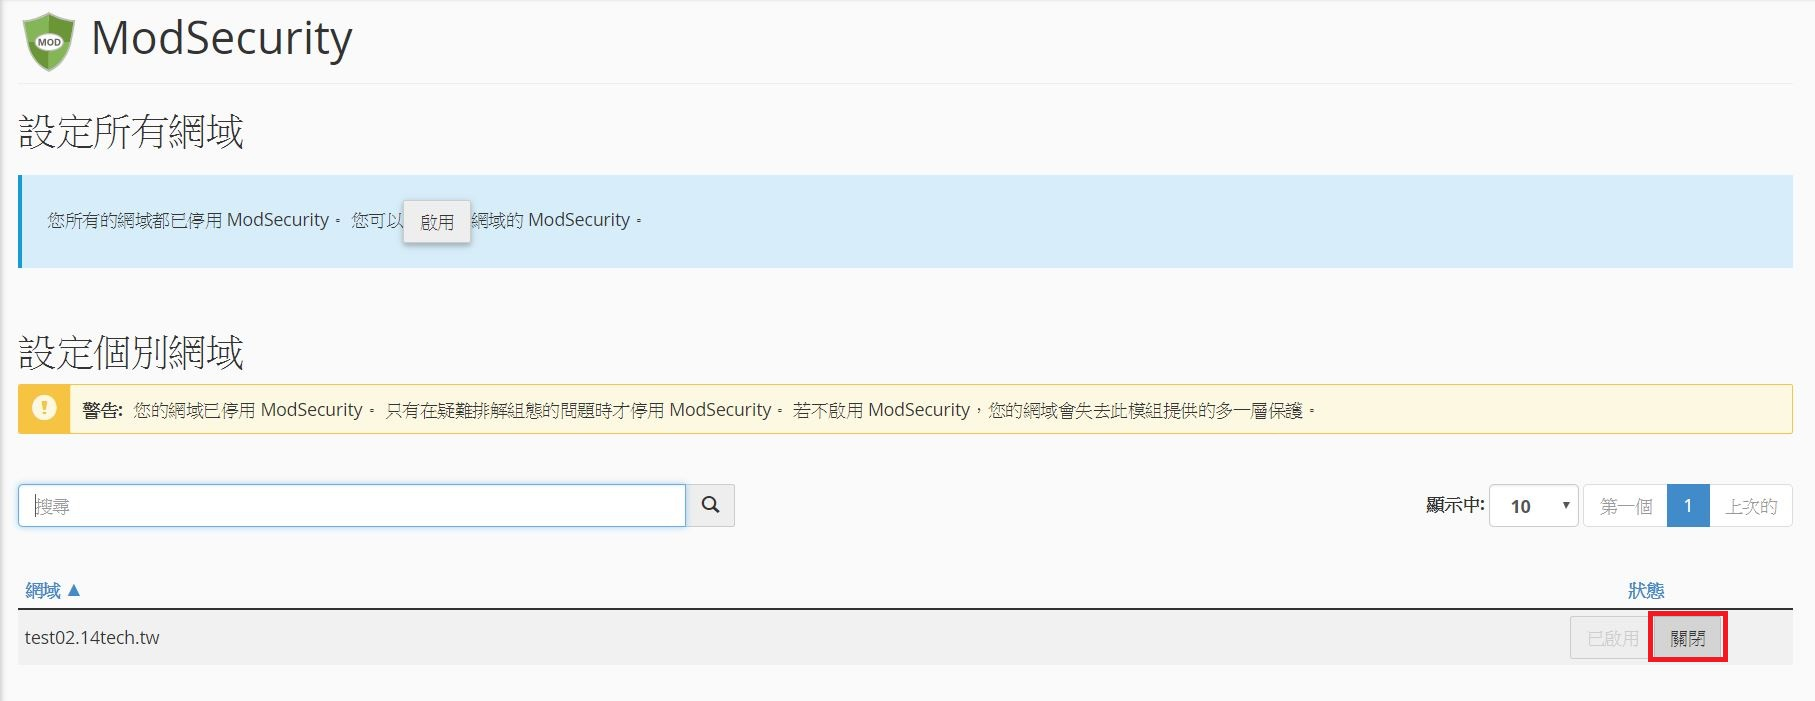 modsecurity設定